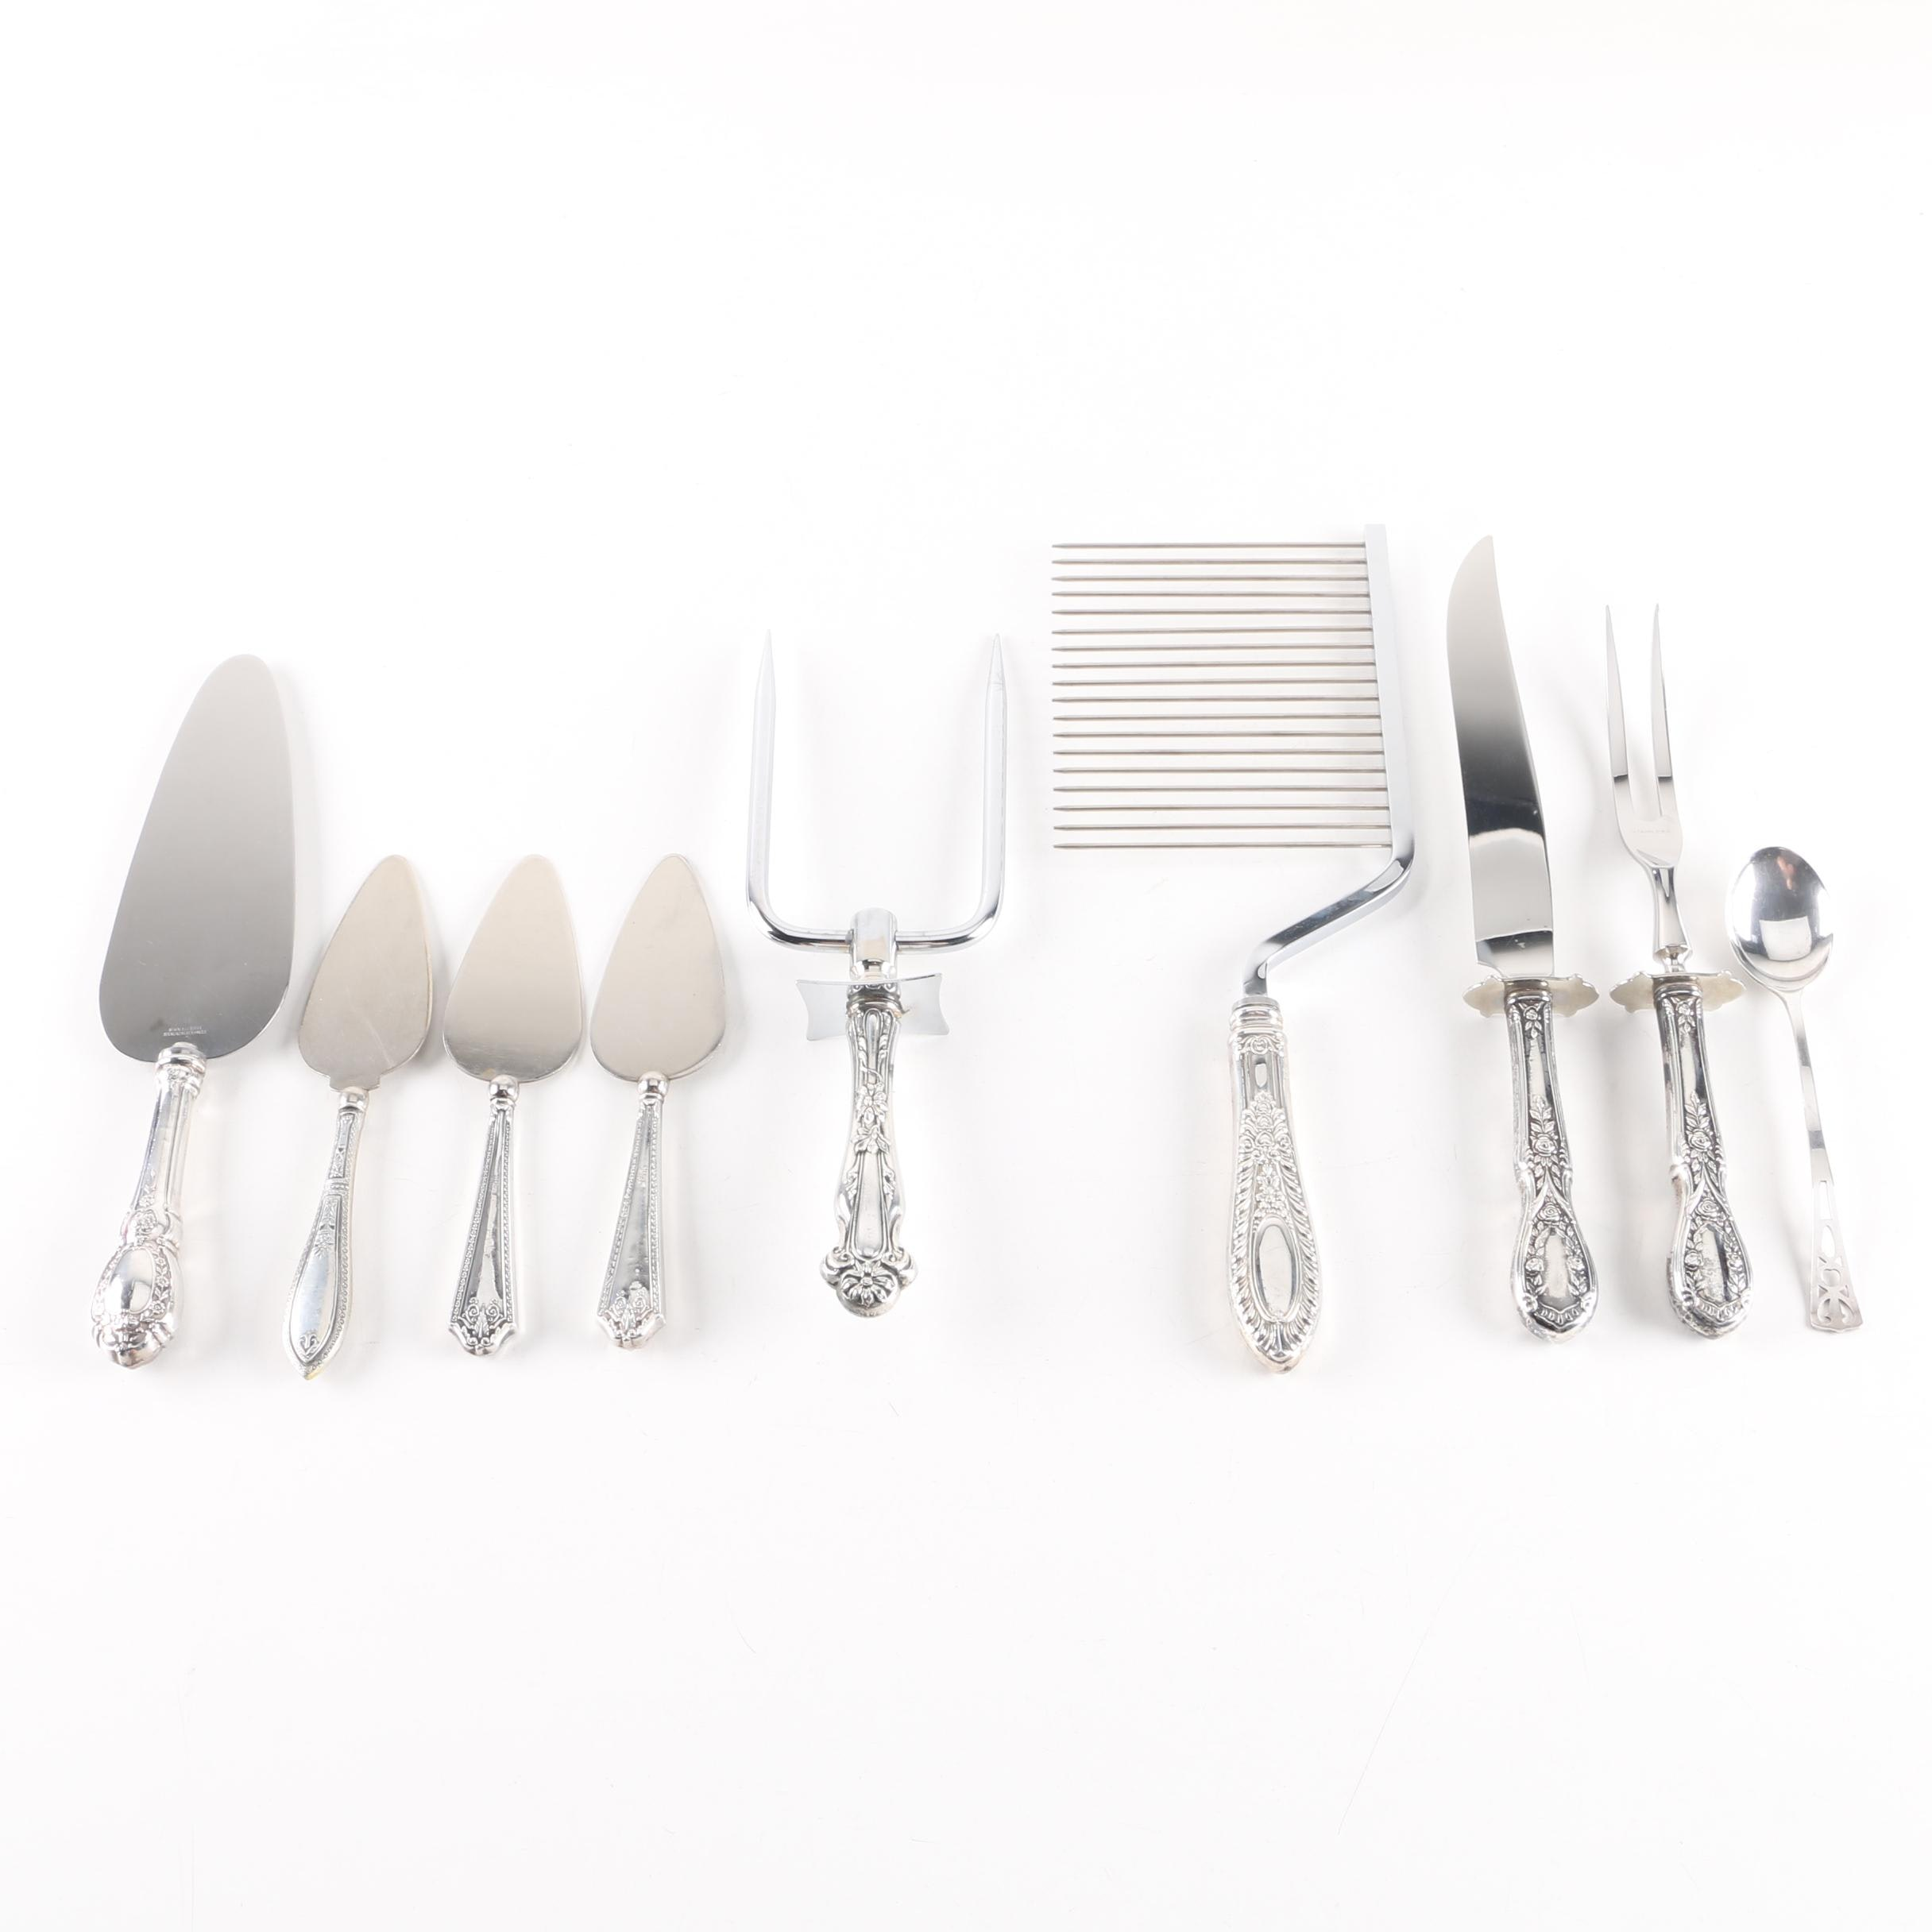 "Manchester ""American Beauty"" Carving Set and Other Sterling Serving Utensils"